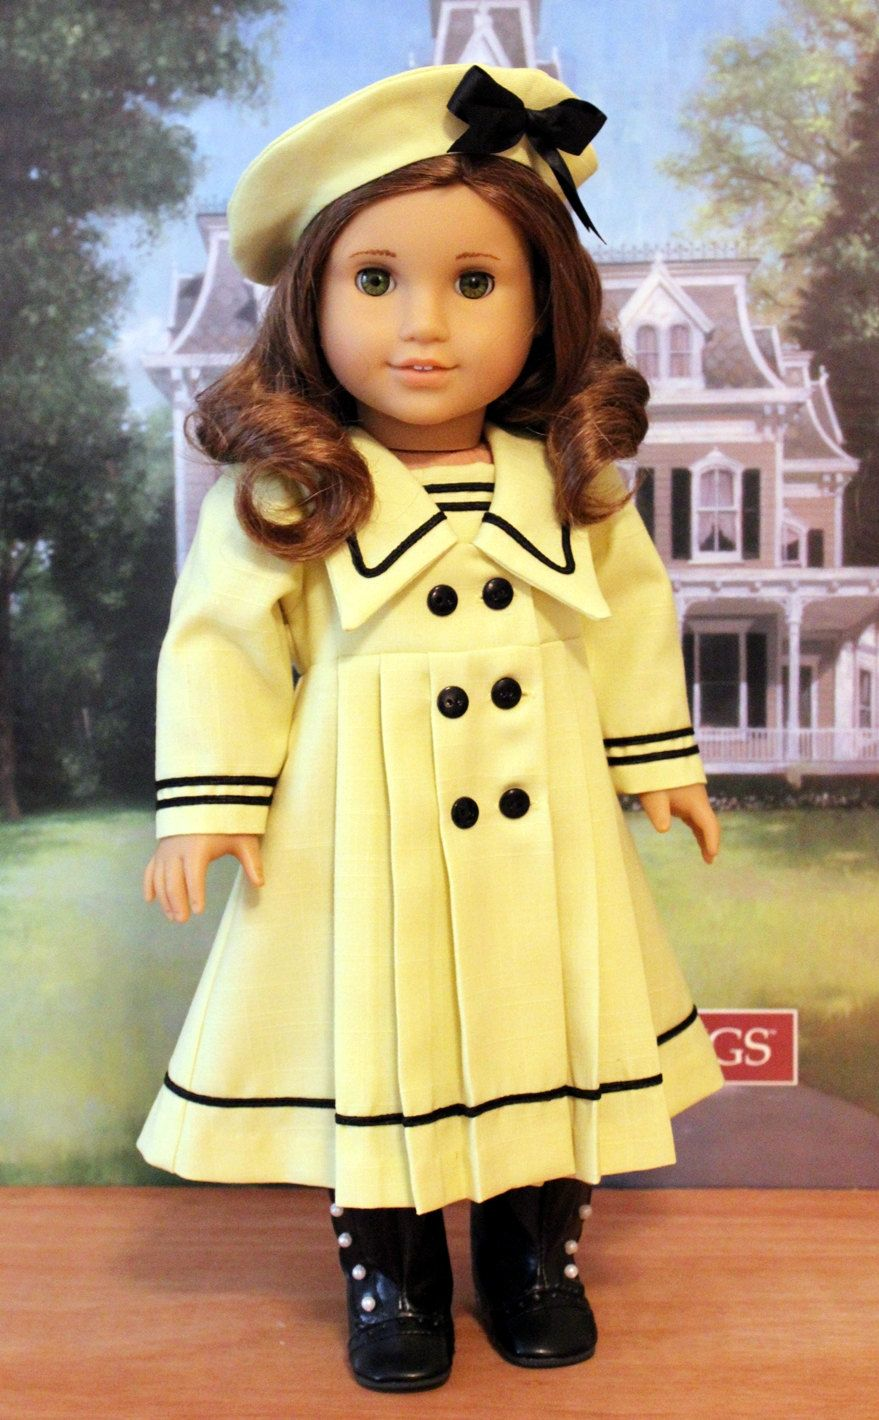 Special Order Yellow Middy Dress | Jette und Puppen